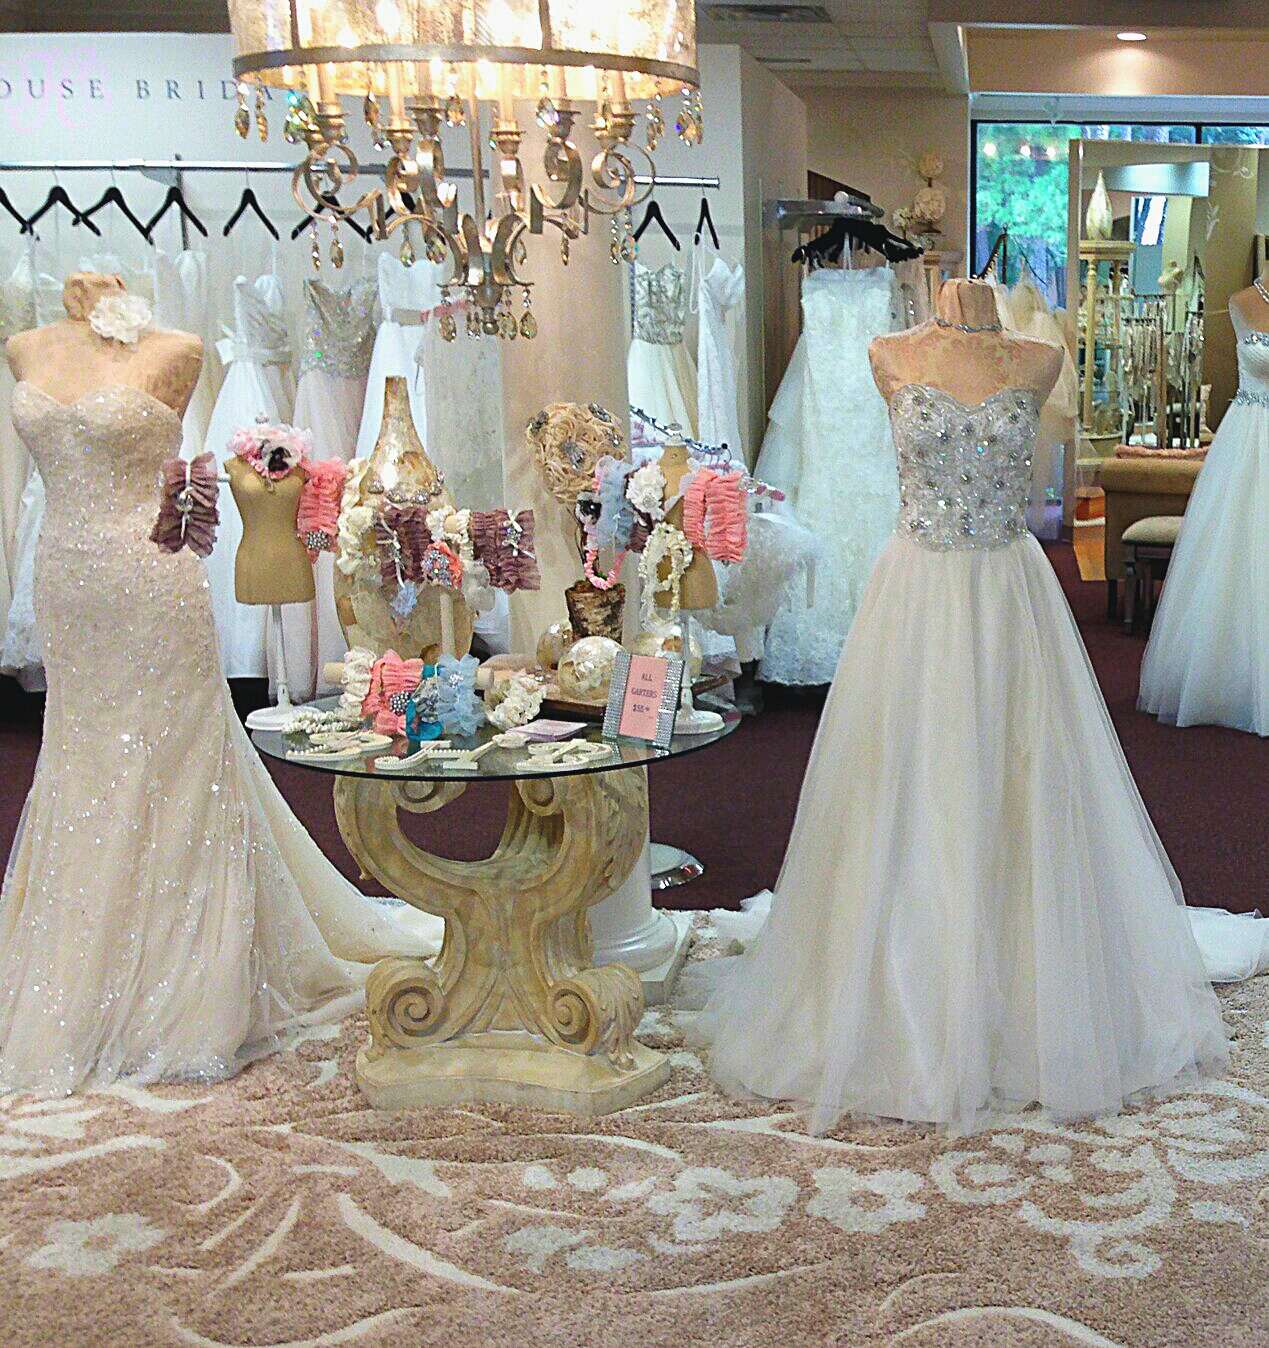 My Top 5 Tips For Wedding Gown Shopping